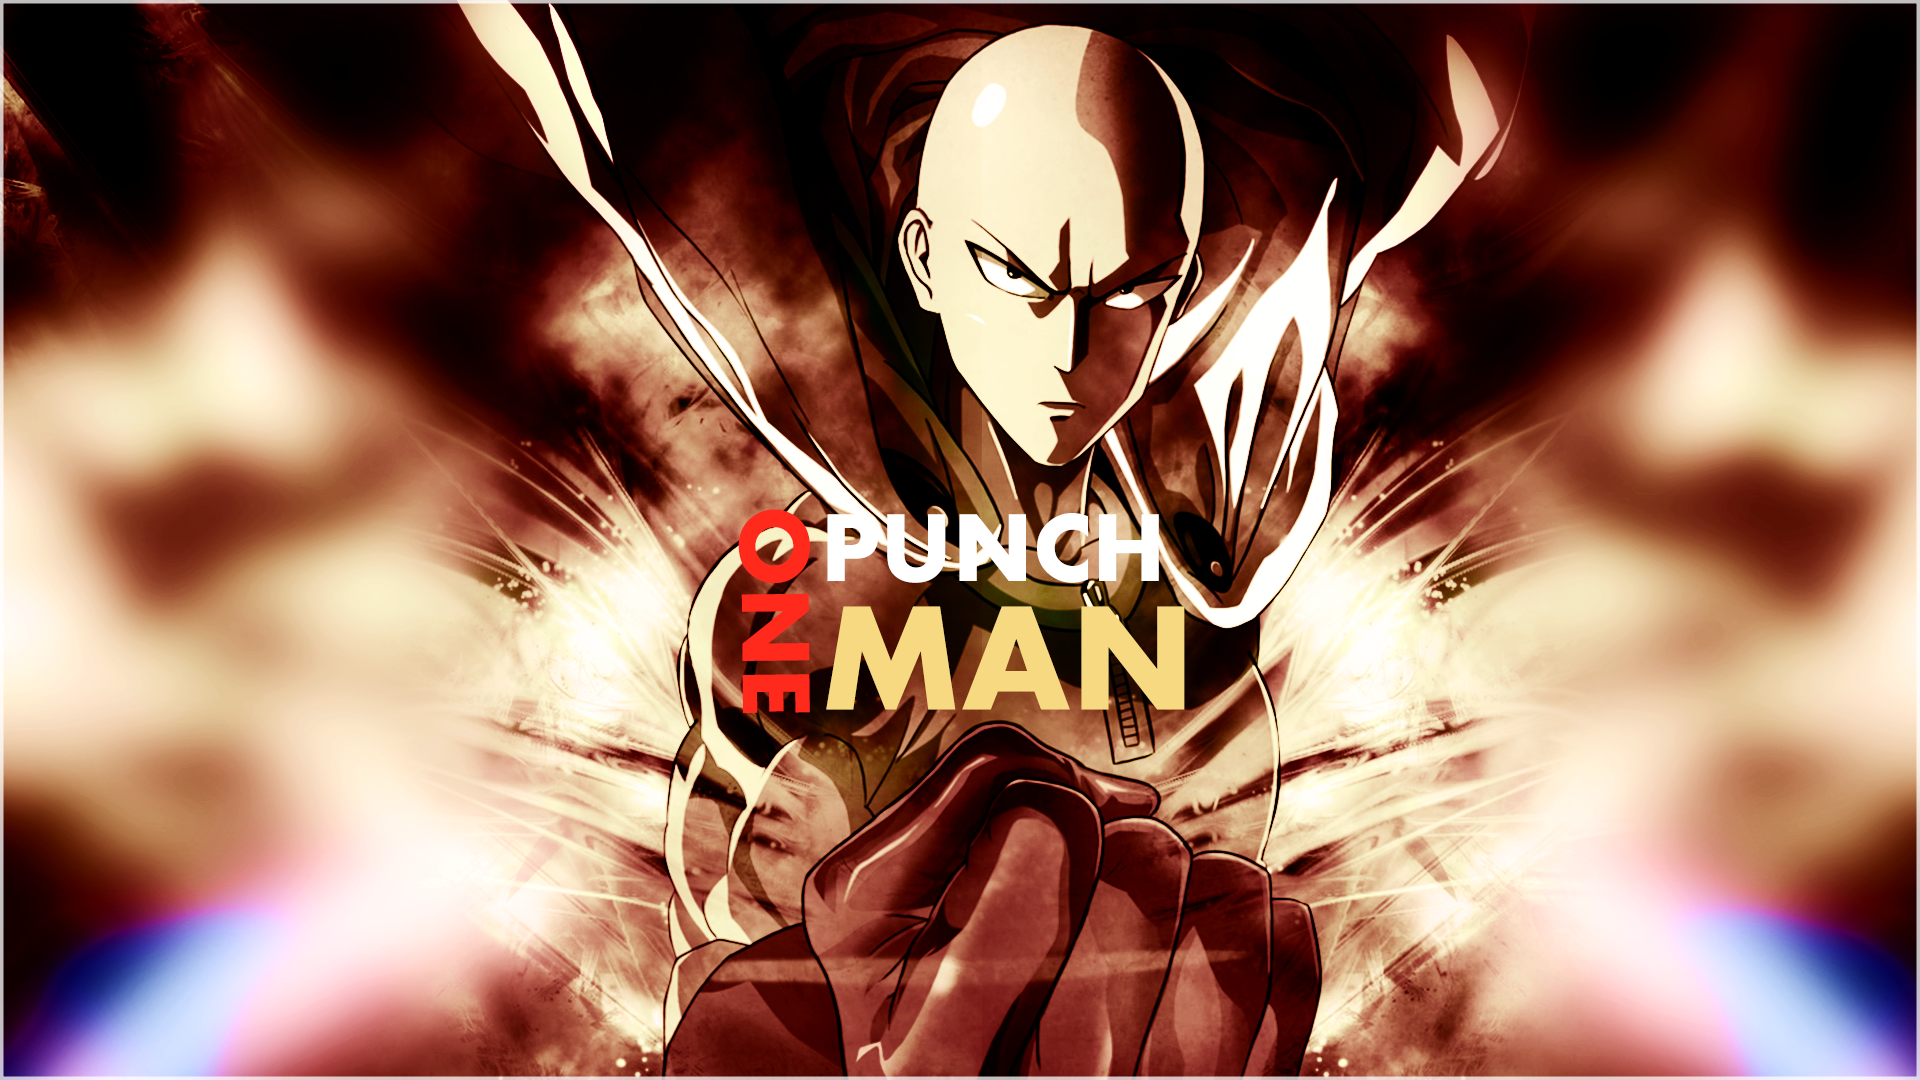 379 one punch man hd wallpapers backgrounds wallpaper abyss page 2